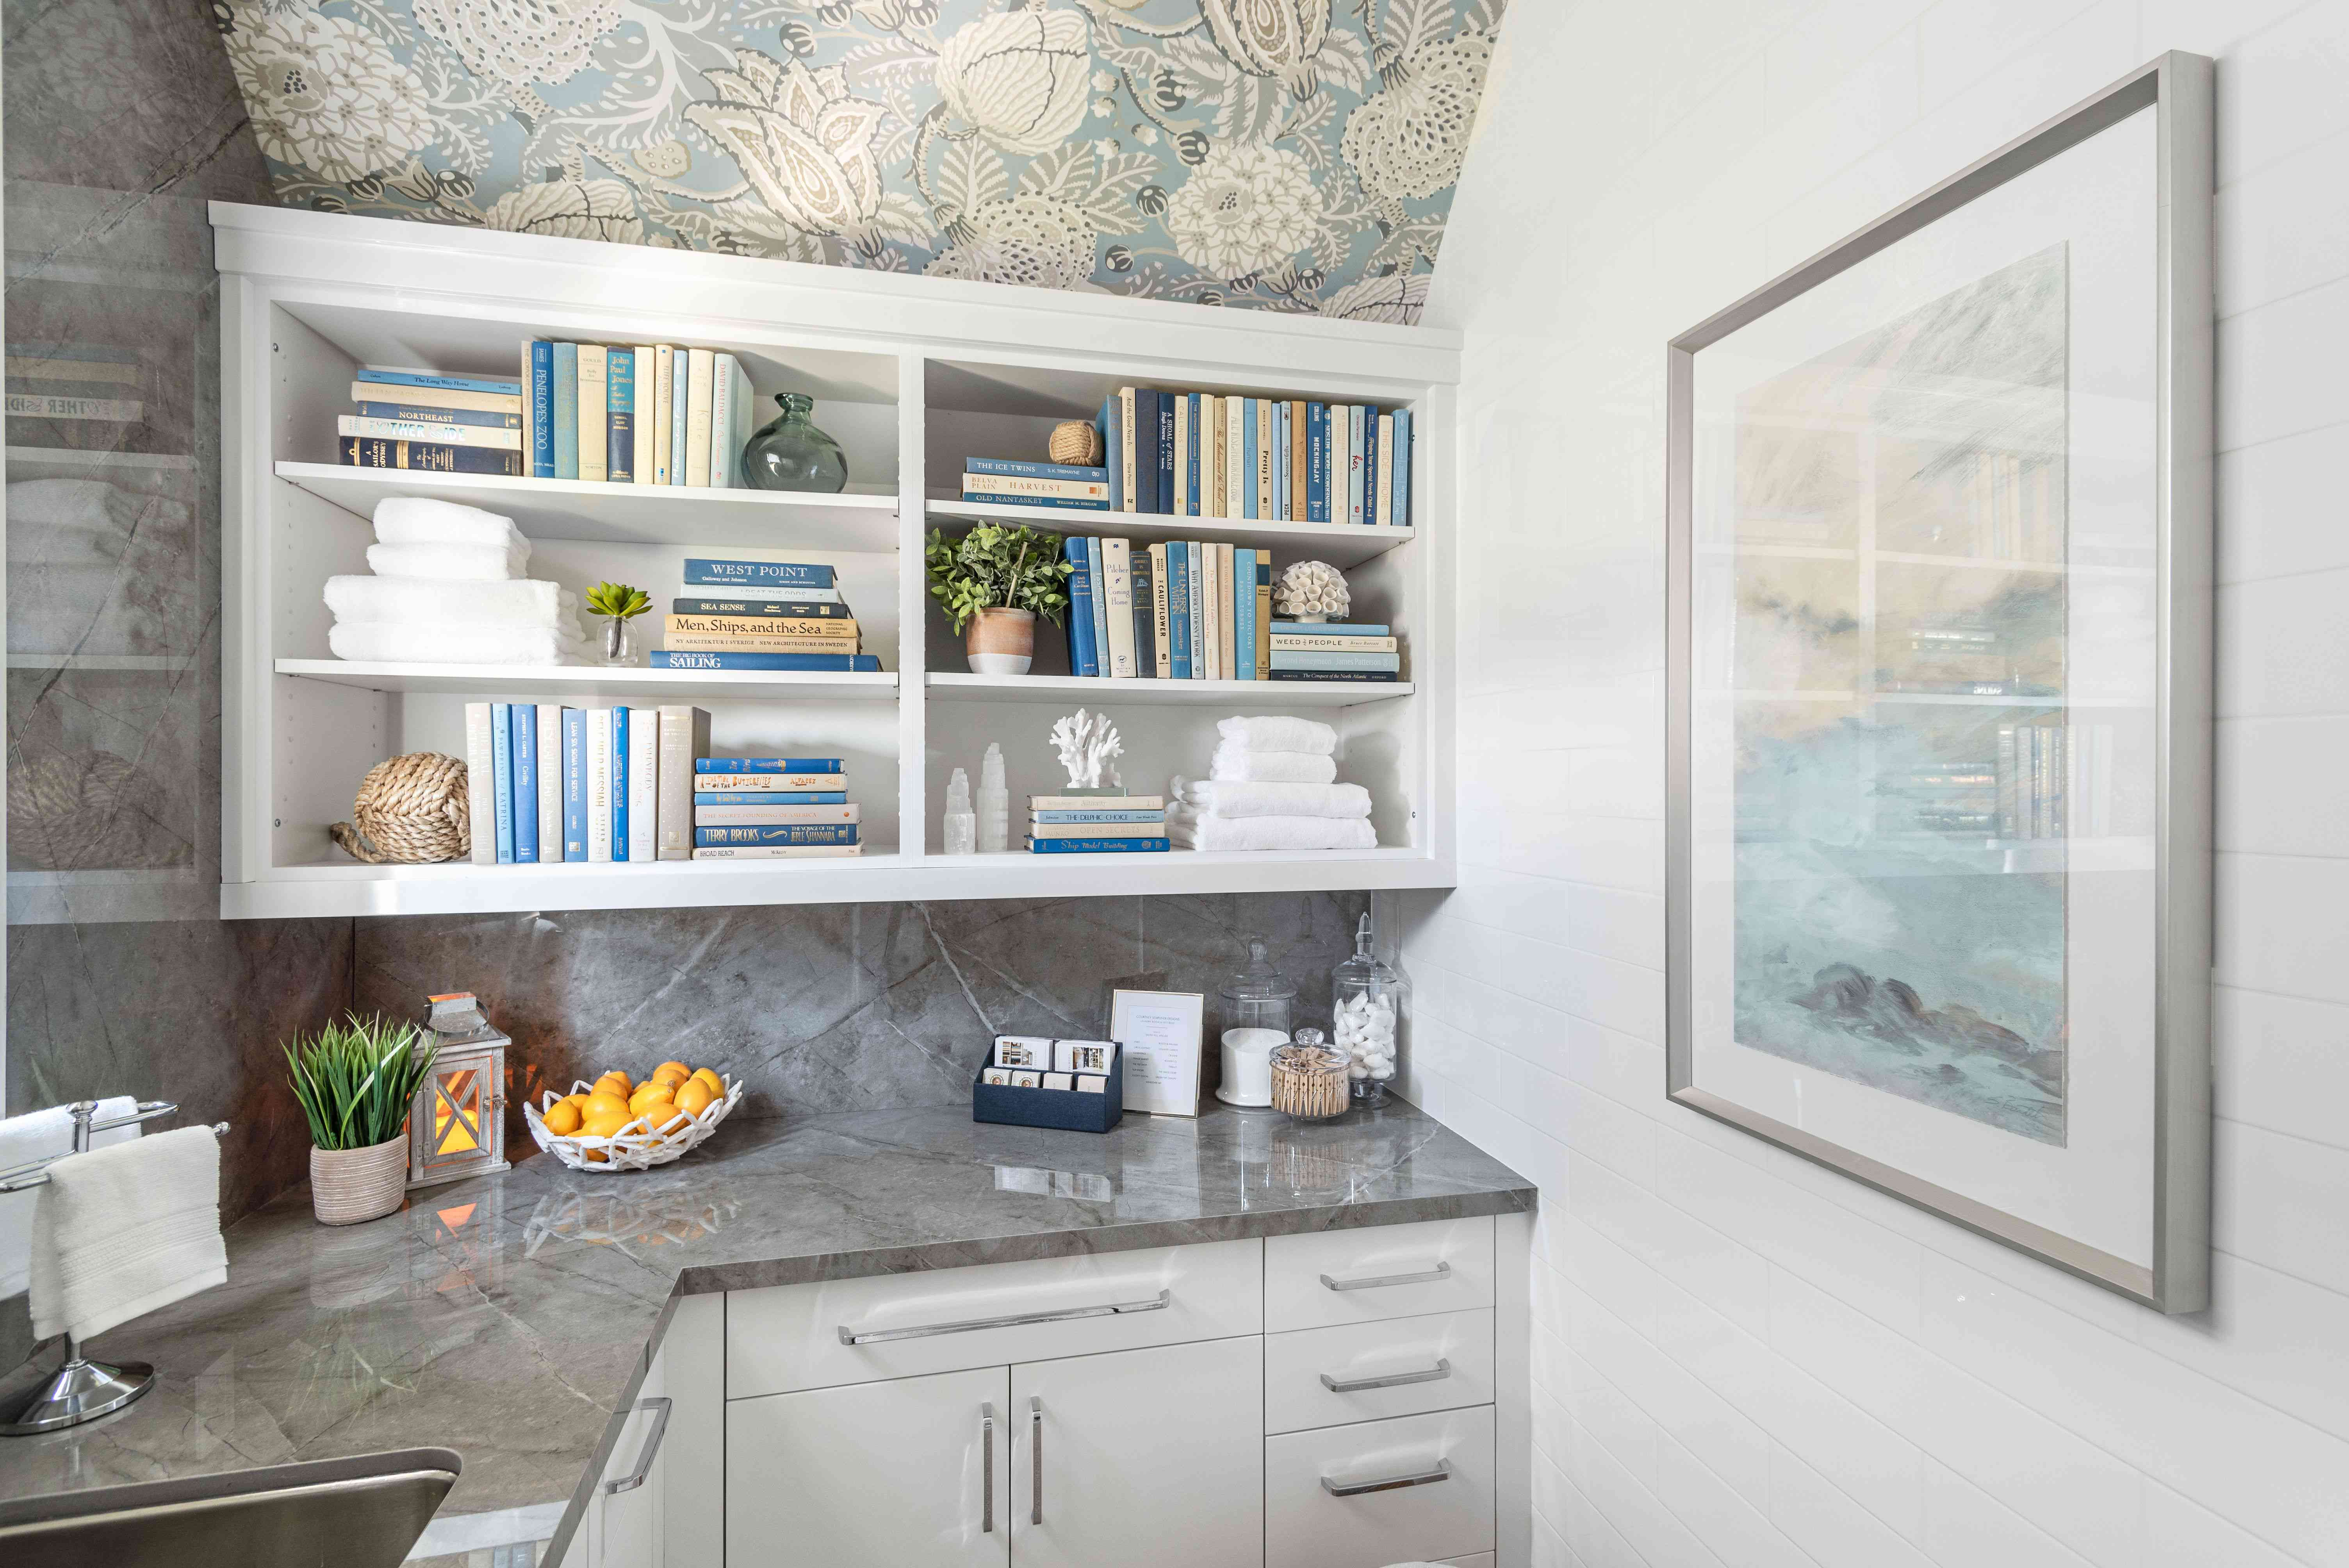 Laundry room nook with decorative books and wallpaper.